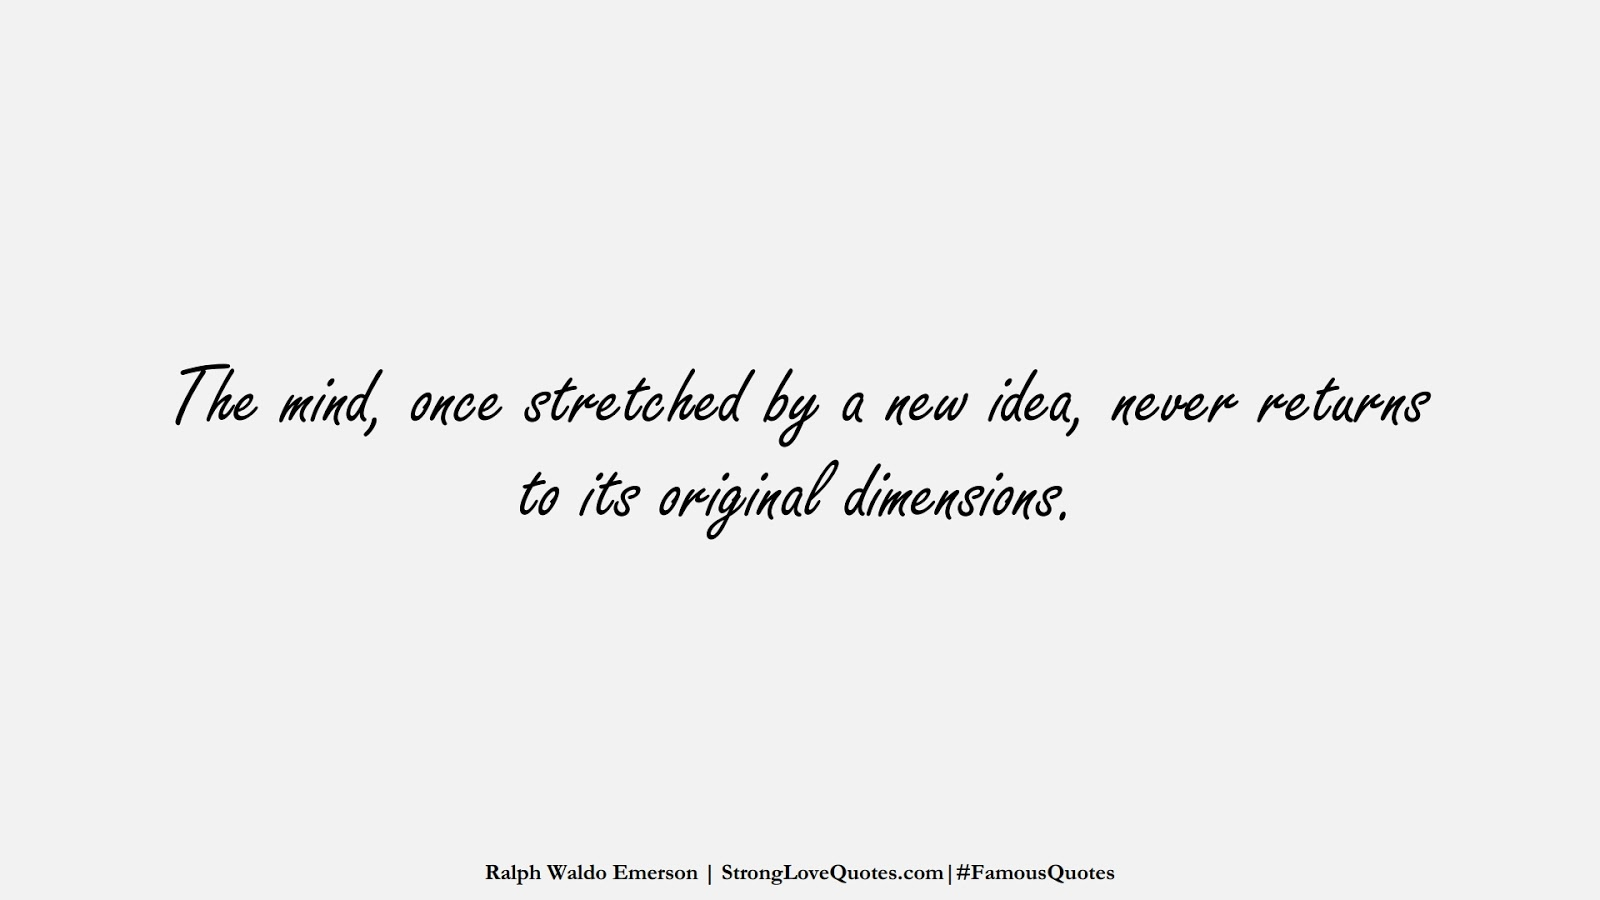 The mind, once stretched by a new idea, never returns to its original dimensions. (Ralph Waldo Emerson);  #FamousQuotes